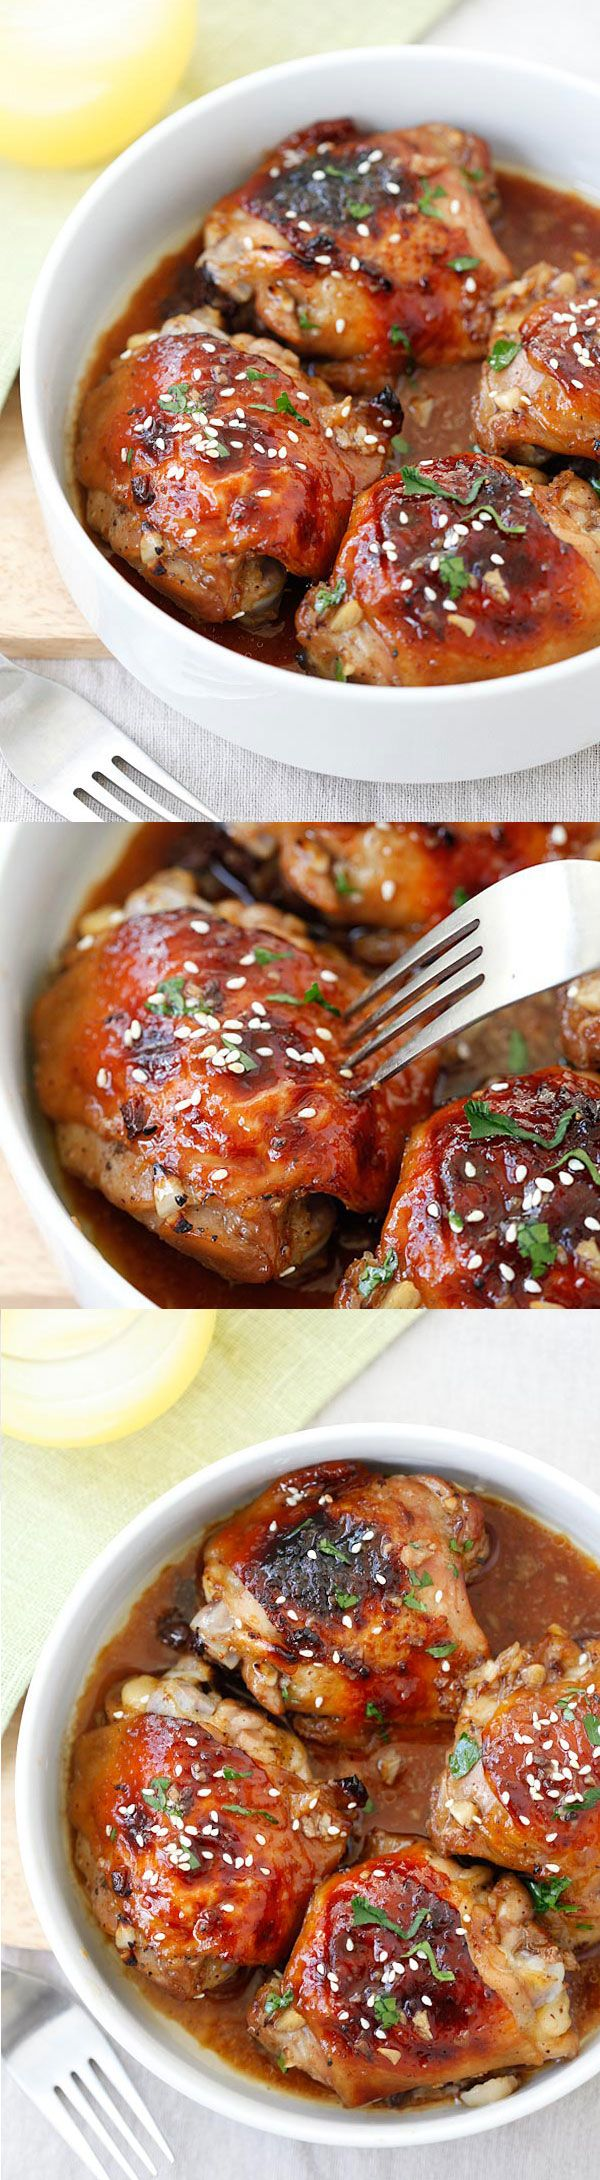 Baked Honey Soy Chicken – moist, tender and juicy chicken thighs marinated with honey, soy sauce, ginger, garlic and baked in oven. Easy dinner for the family! | rasamalaysia.com